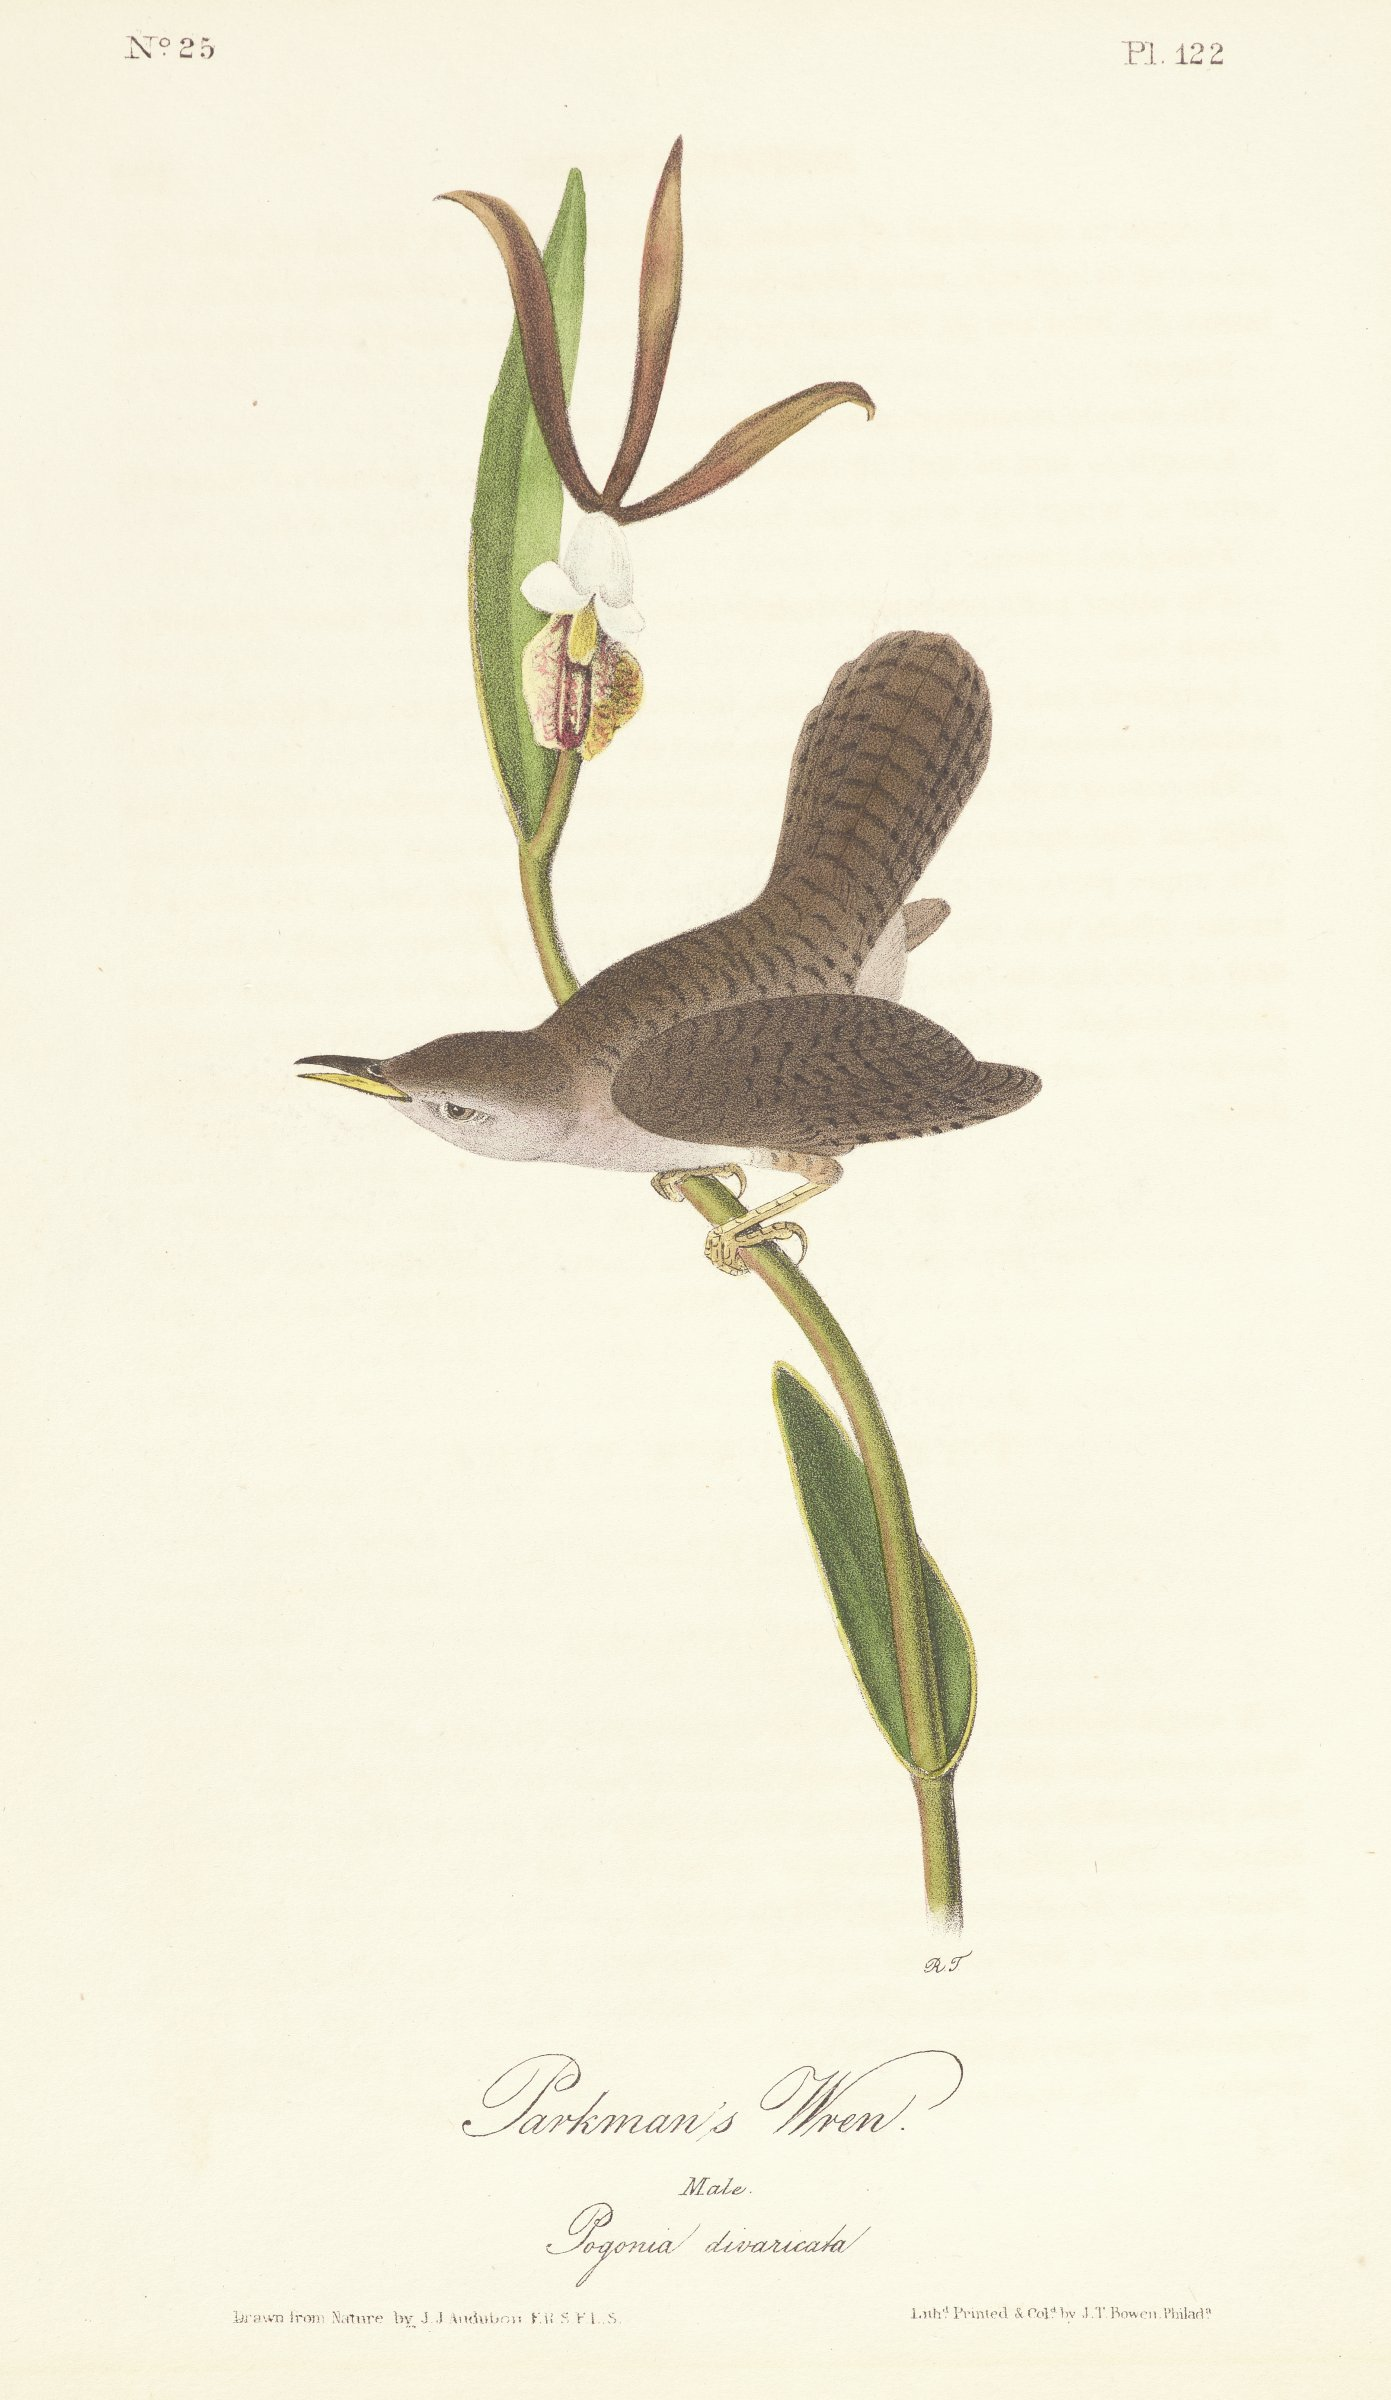 A bird with brown feathering and black striping stands on a stem that produces a small dark purple petalled flower.